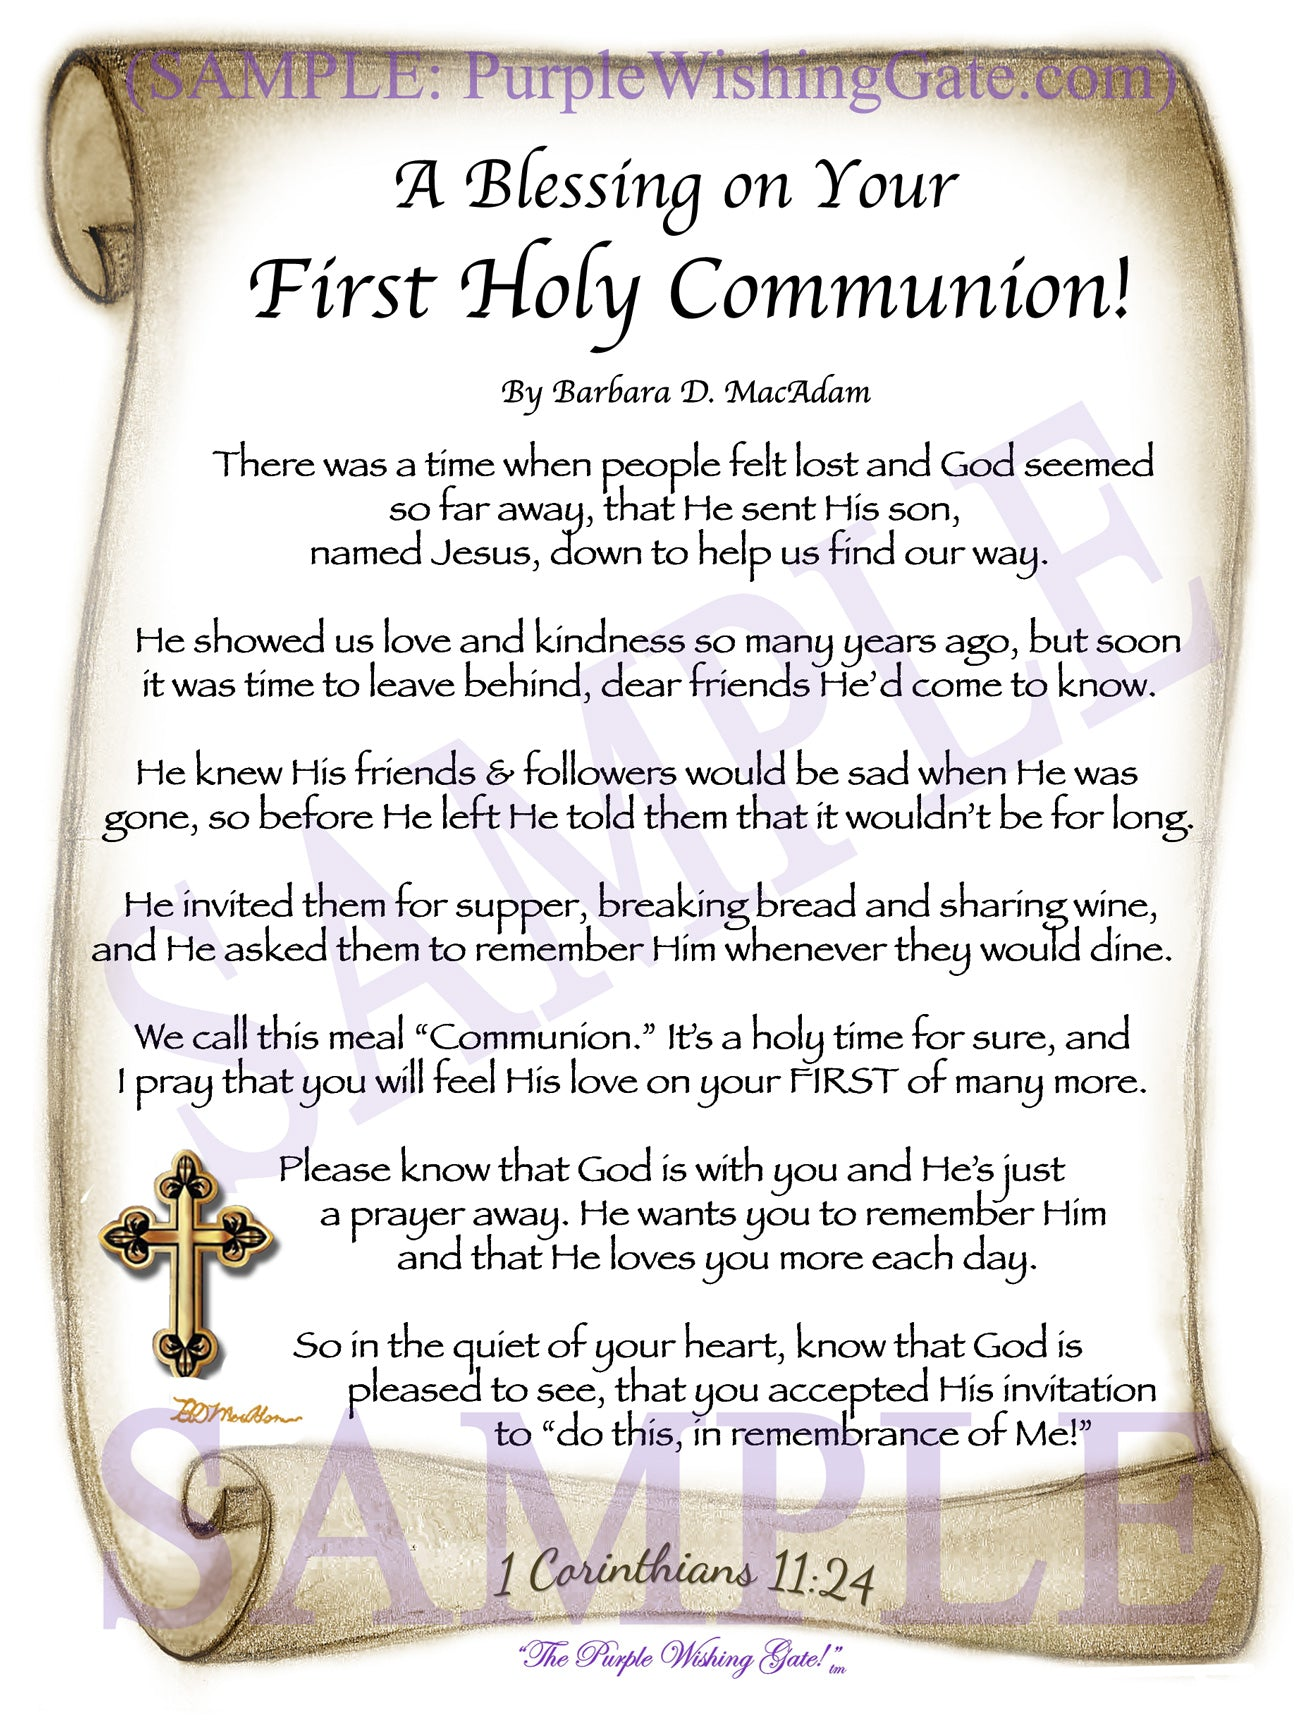 A Blessing on Your First Holy Communion